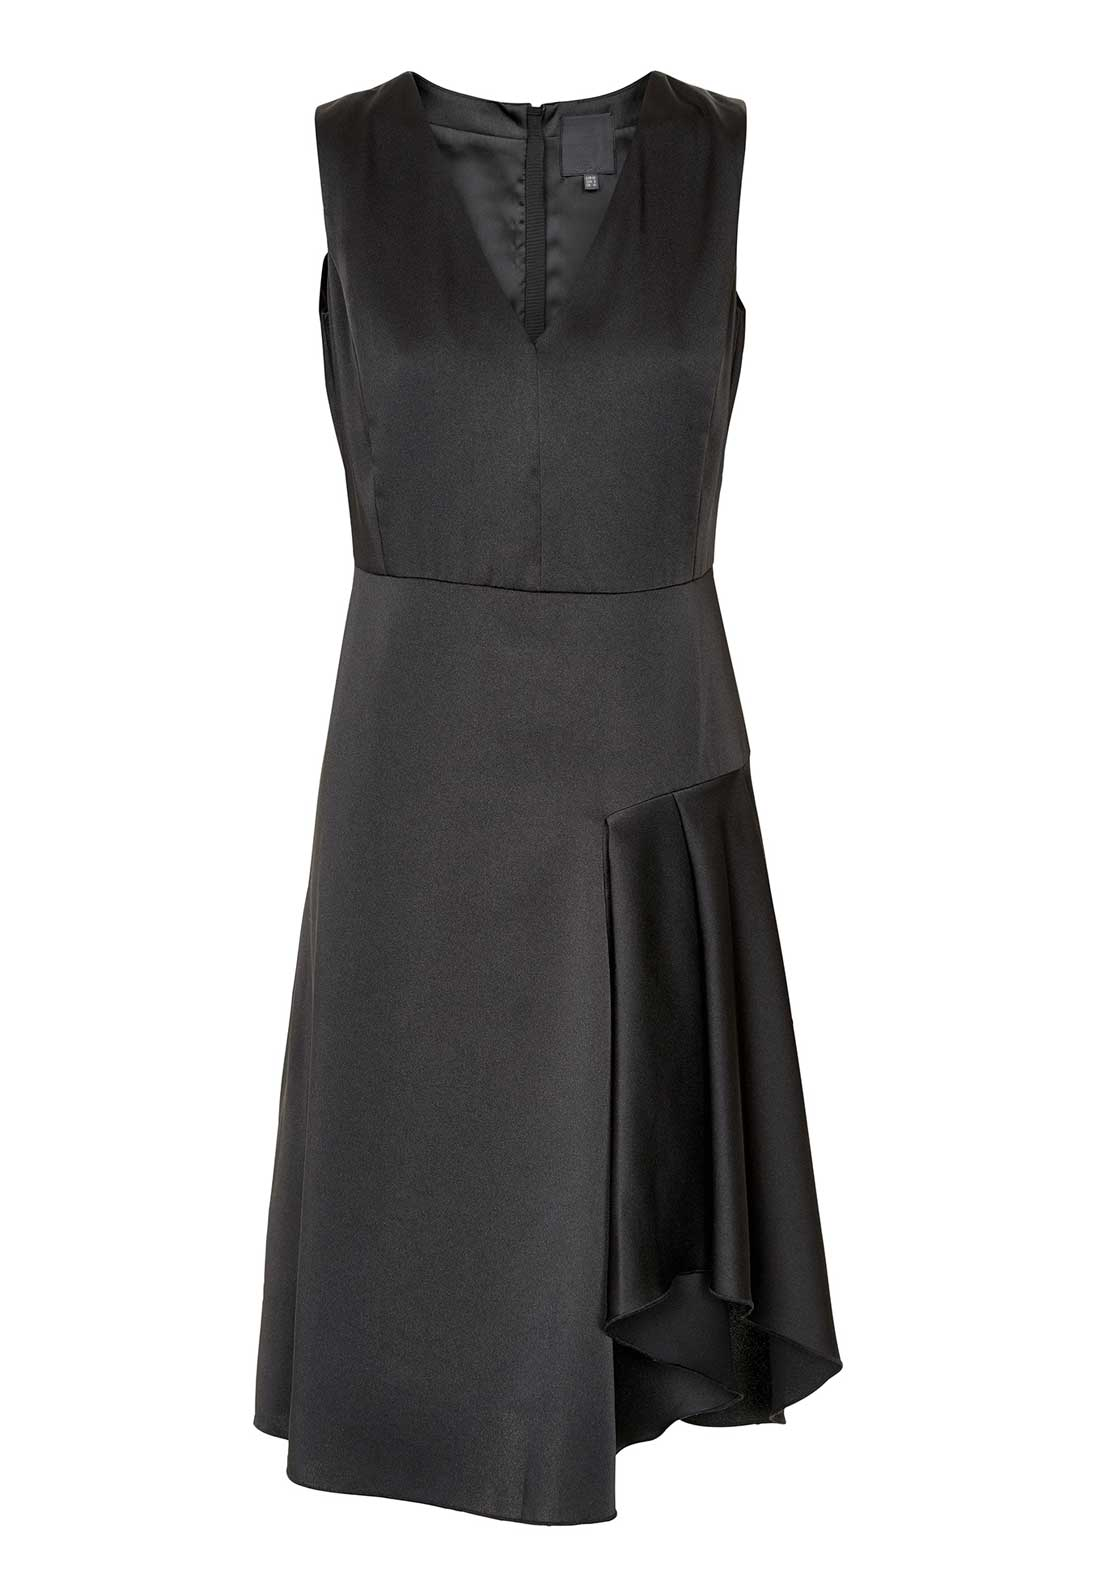 Inwear Brenna Satin Ruffle Detail Sleeveless Dress, Black